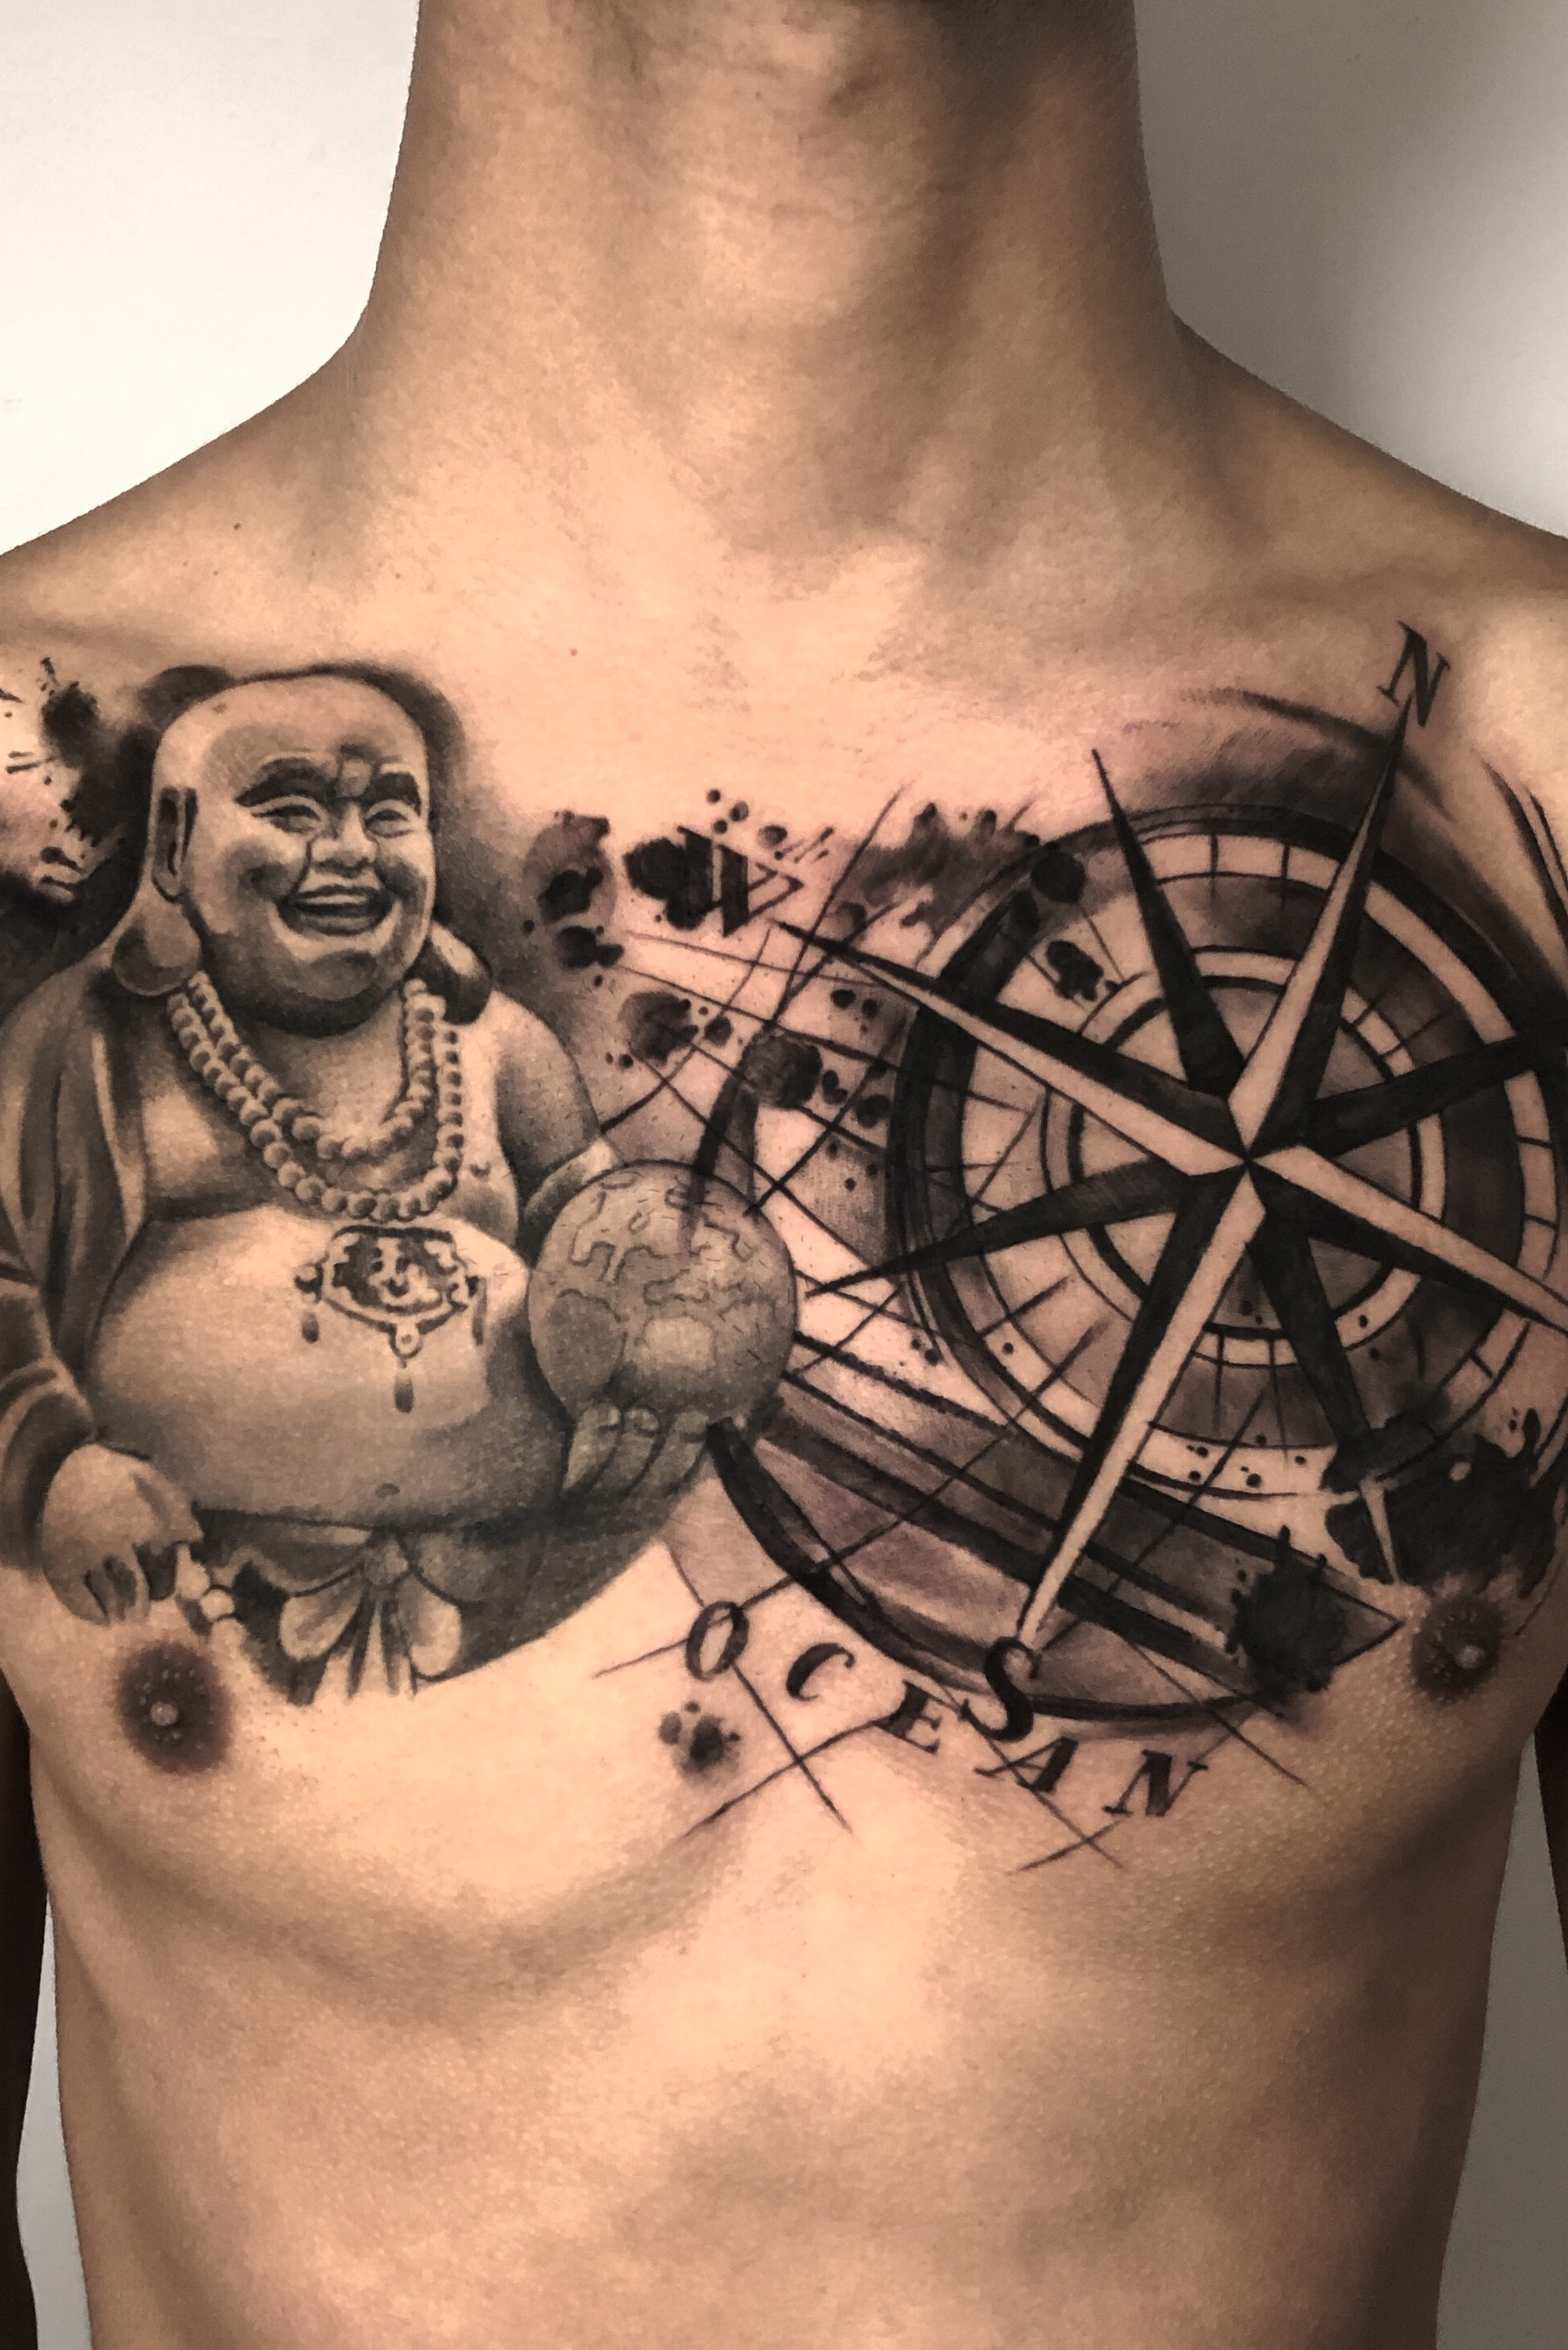 Fun piece- chest piece on André. Not my usual style, but I thought I'd share it anyway ? laughing Buddha healed from 3 weeks ago. Using @cheyenne_tattooequipment @dynamiccolor @barberdtssupplies @yayofamilia super cool amazing aftercare ? . . #trashpolka